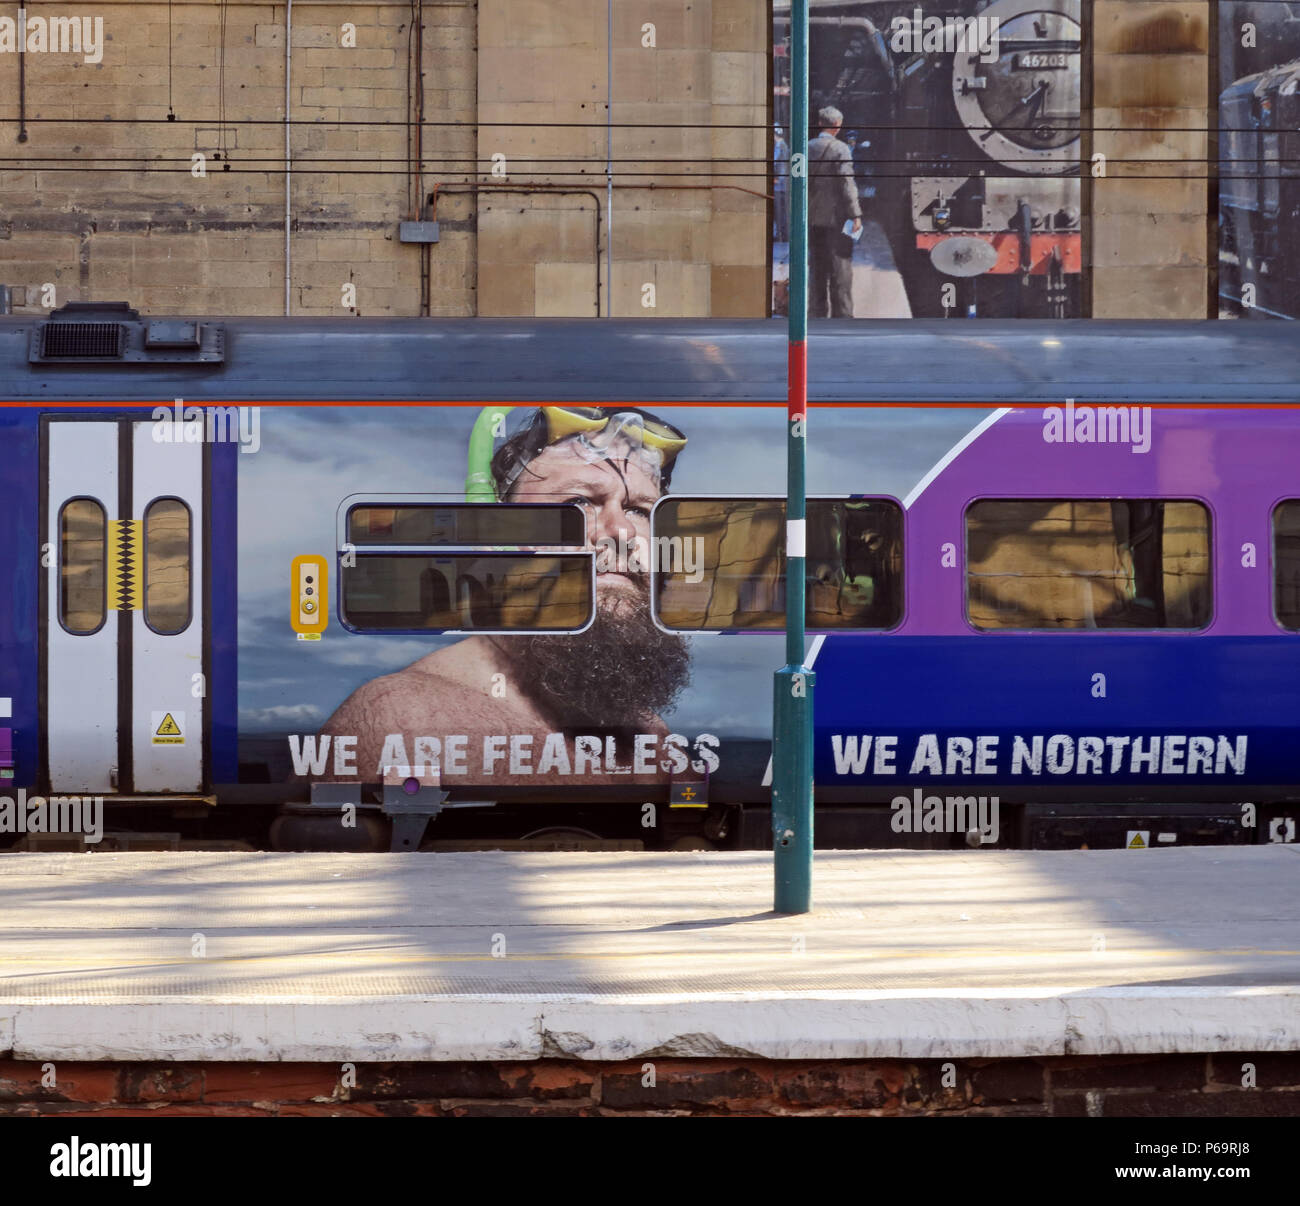 We are Fearless, We Are Northern branding logo, on Northern Railway Train, Carlisle Railway Station, Carlisle, North West England, UK - Stock Image